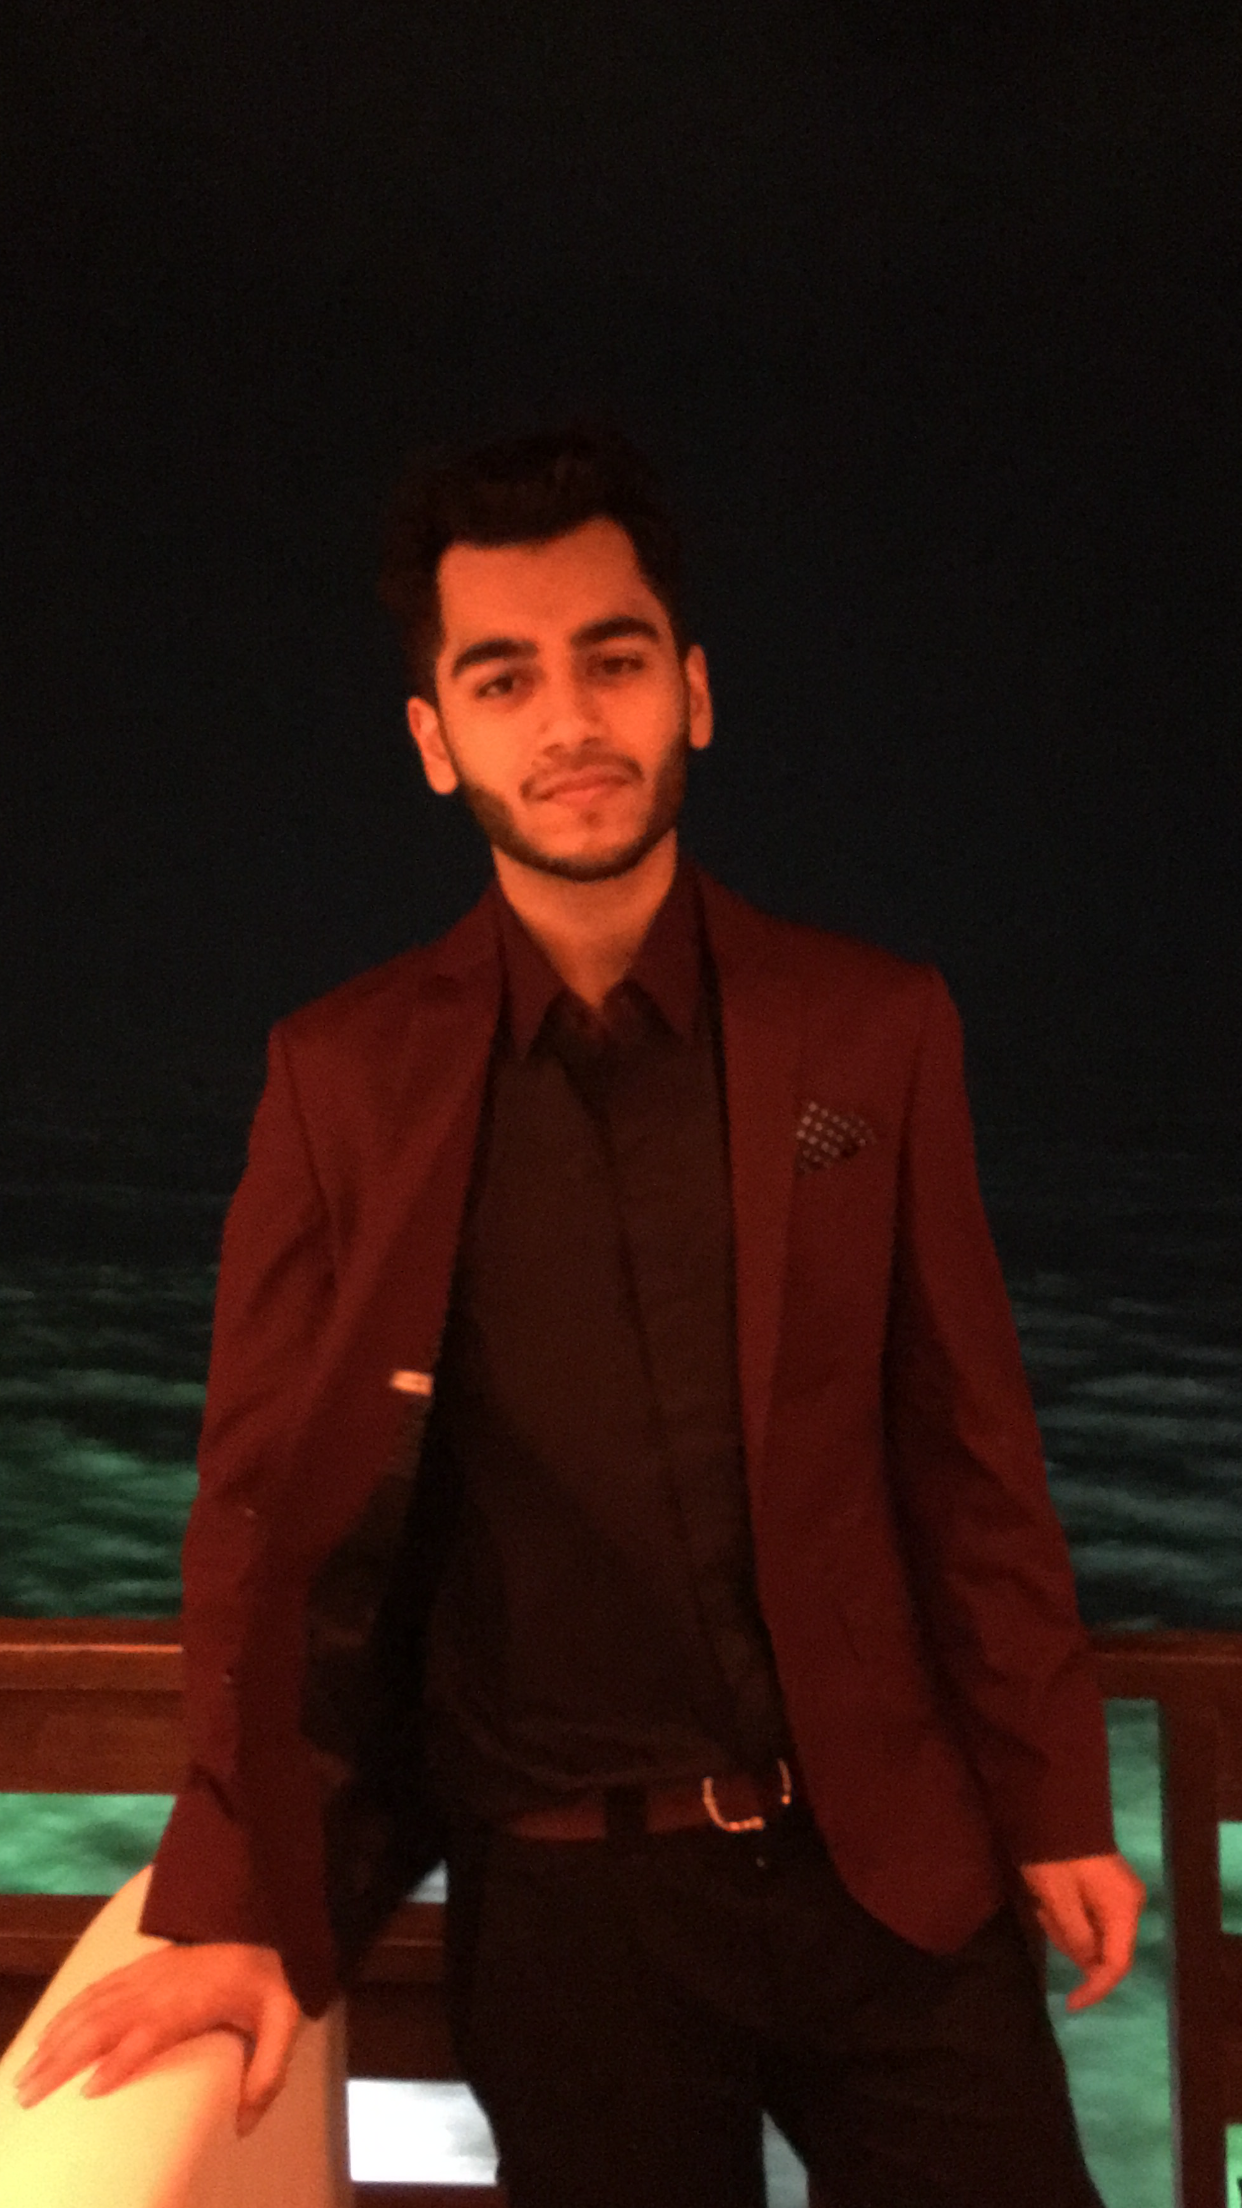 Hamzah Hassan , Mentor  Hamzah is currently attending   Youngstown State University through the NEOMED B   accmed Program